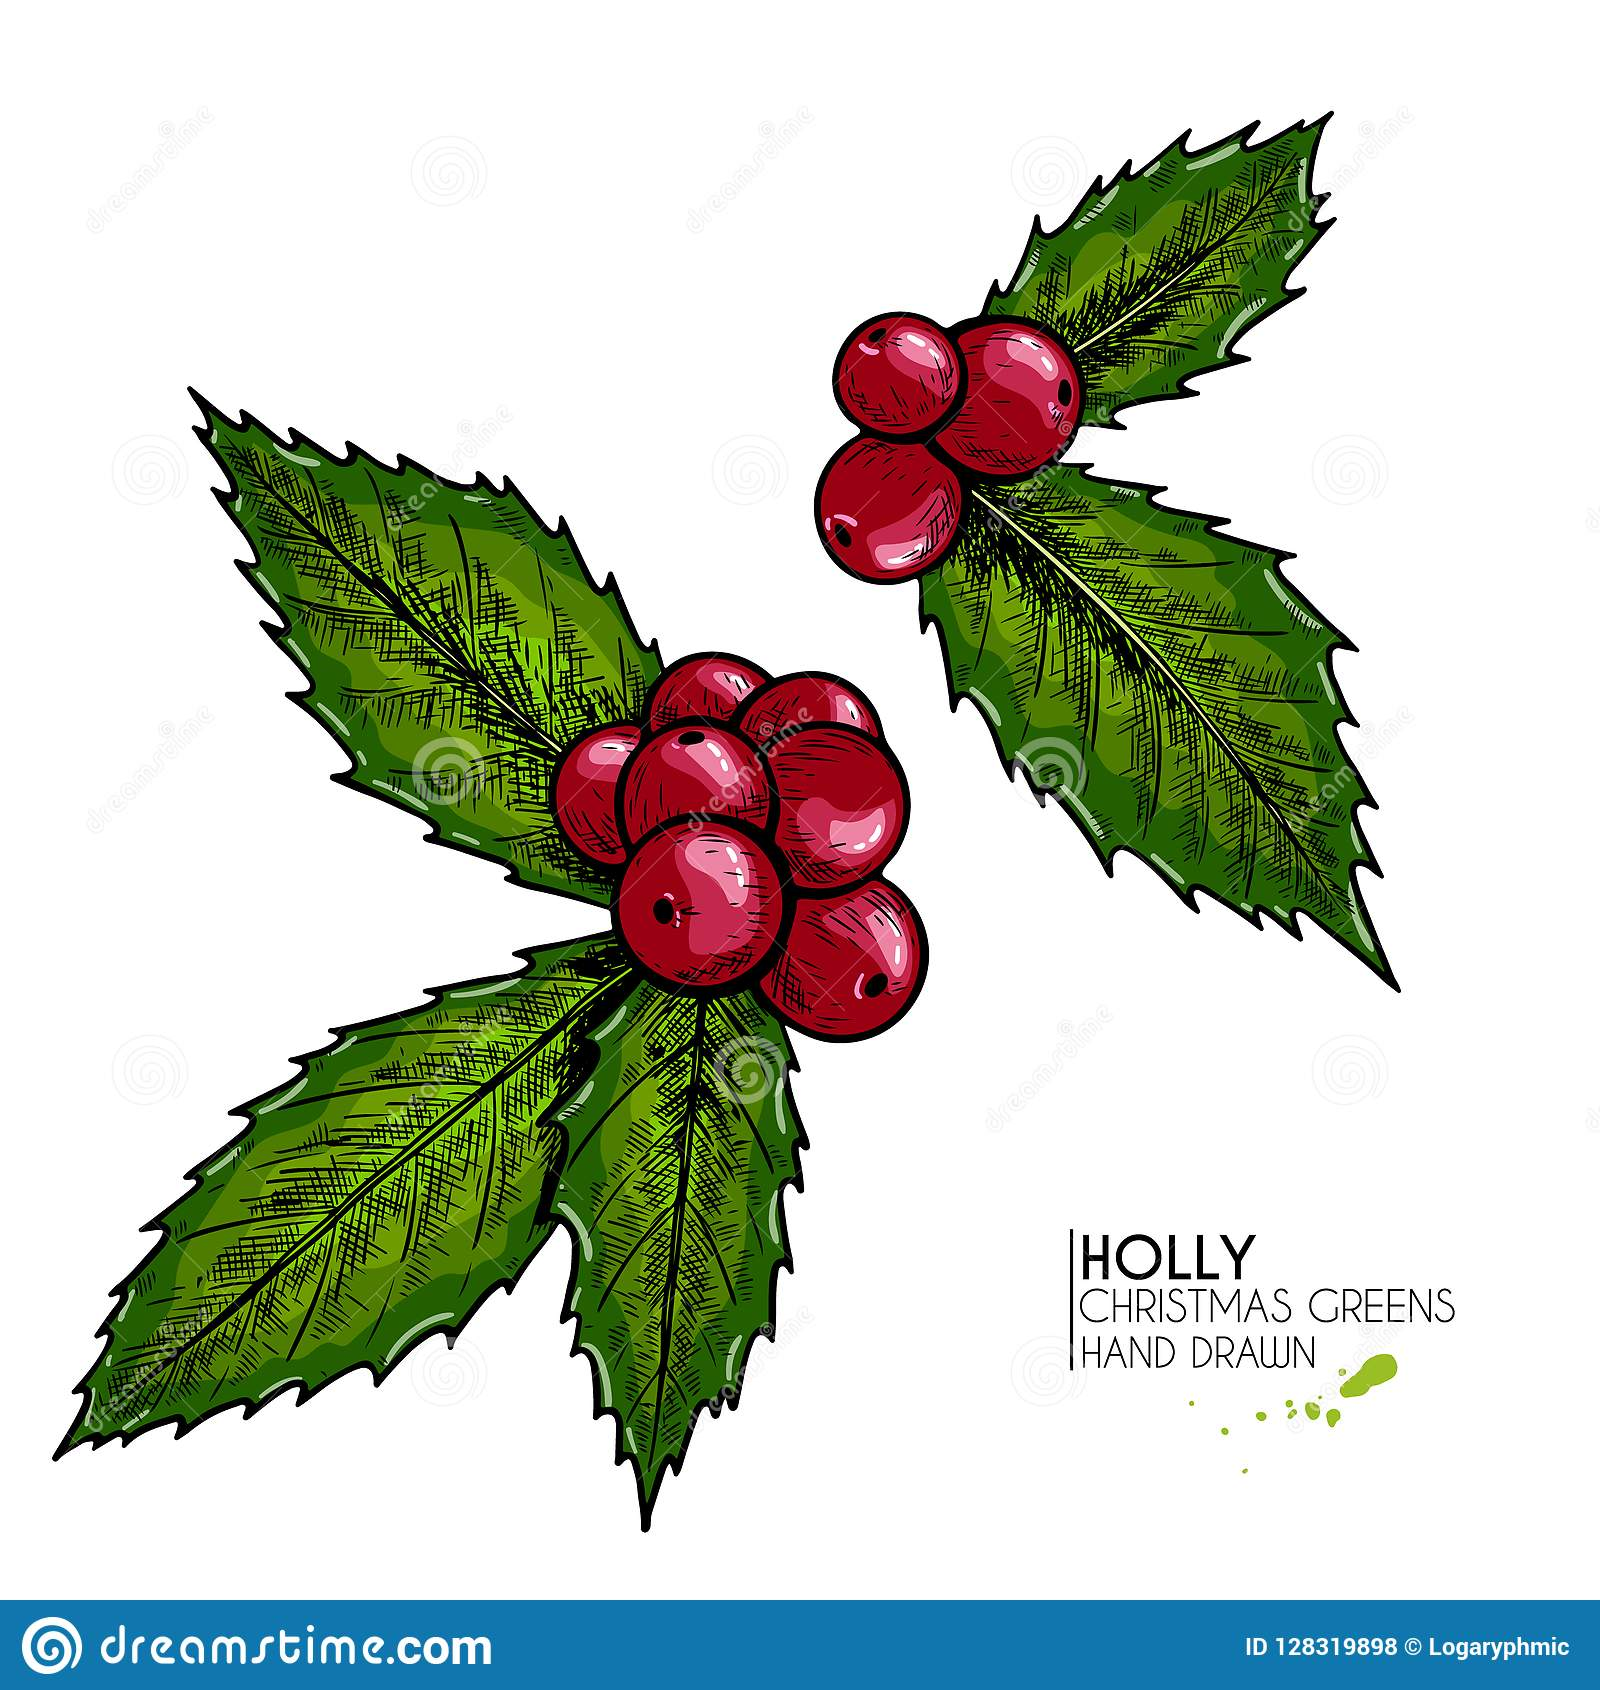 Hand drawn holly. Vector colored illustration. Christmas greenery. Engraved berries and leaves isolated on white